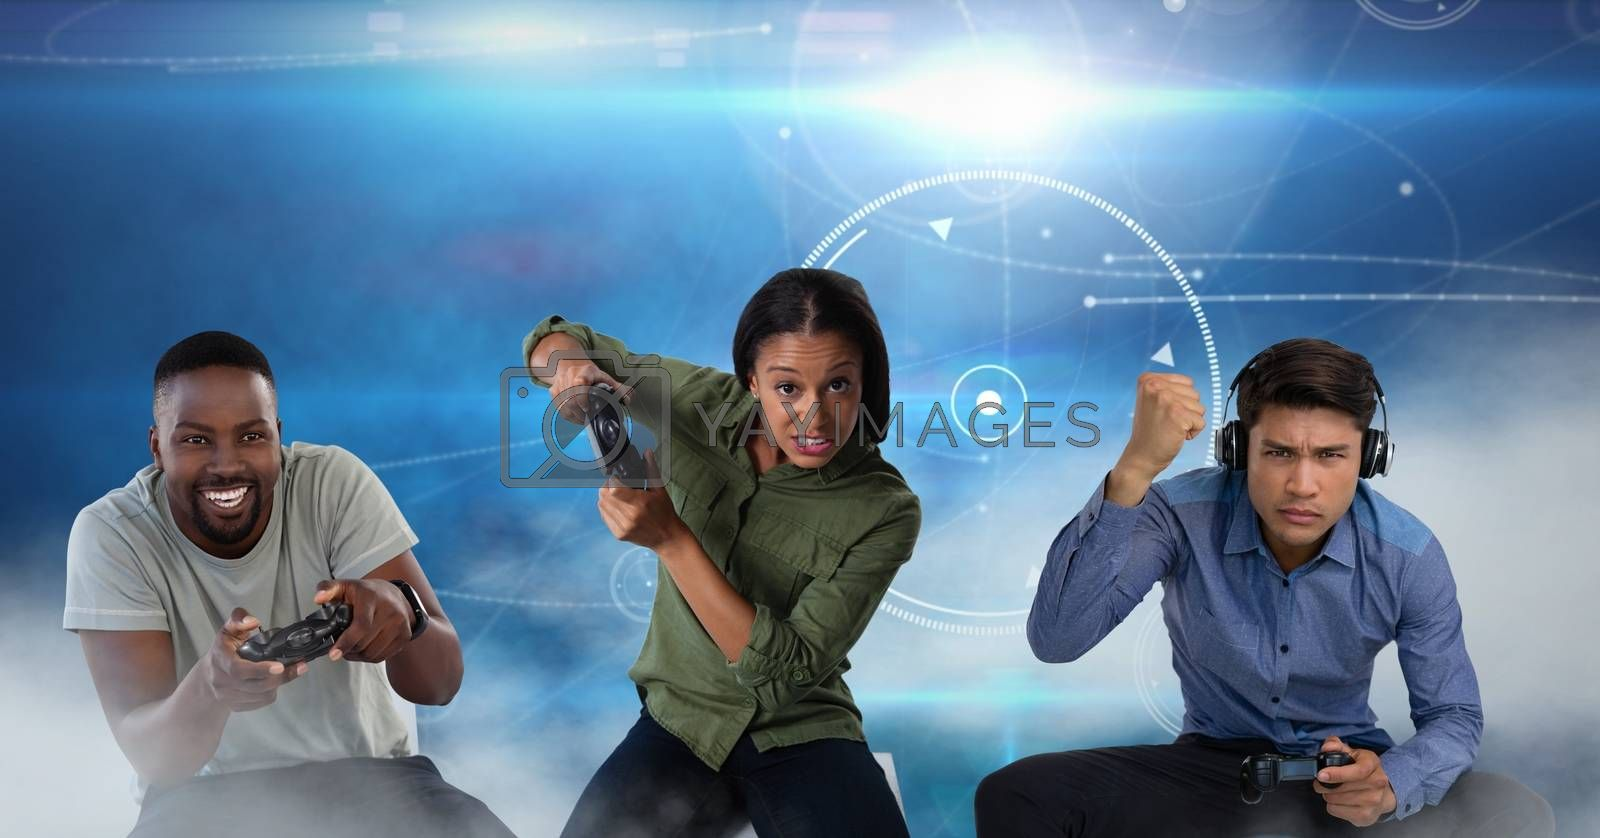 Digital composite of People playing with computer game controllers with blue technology background